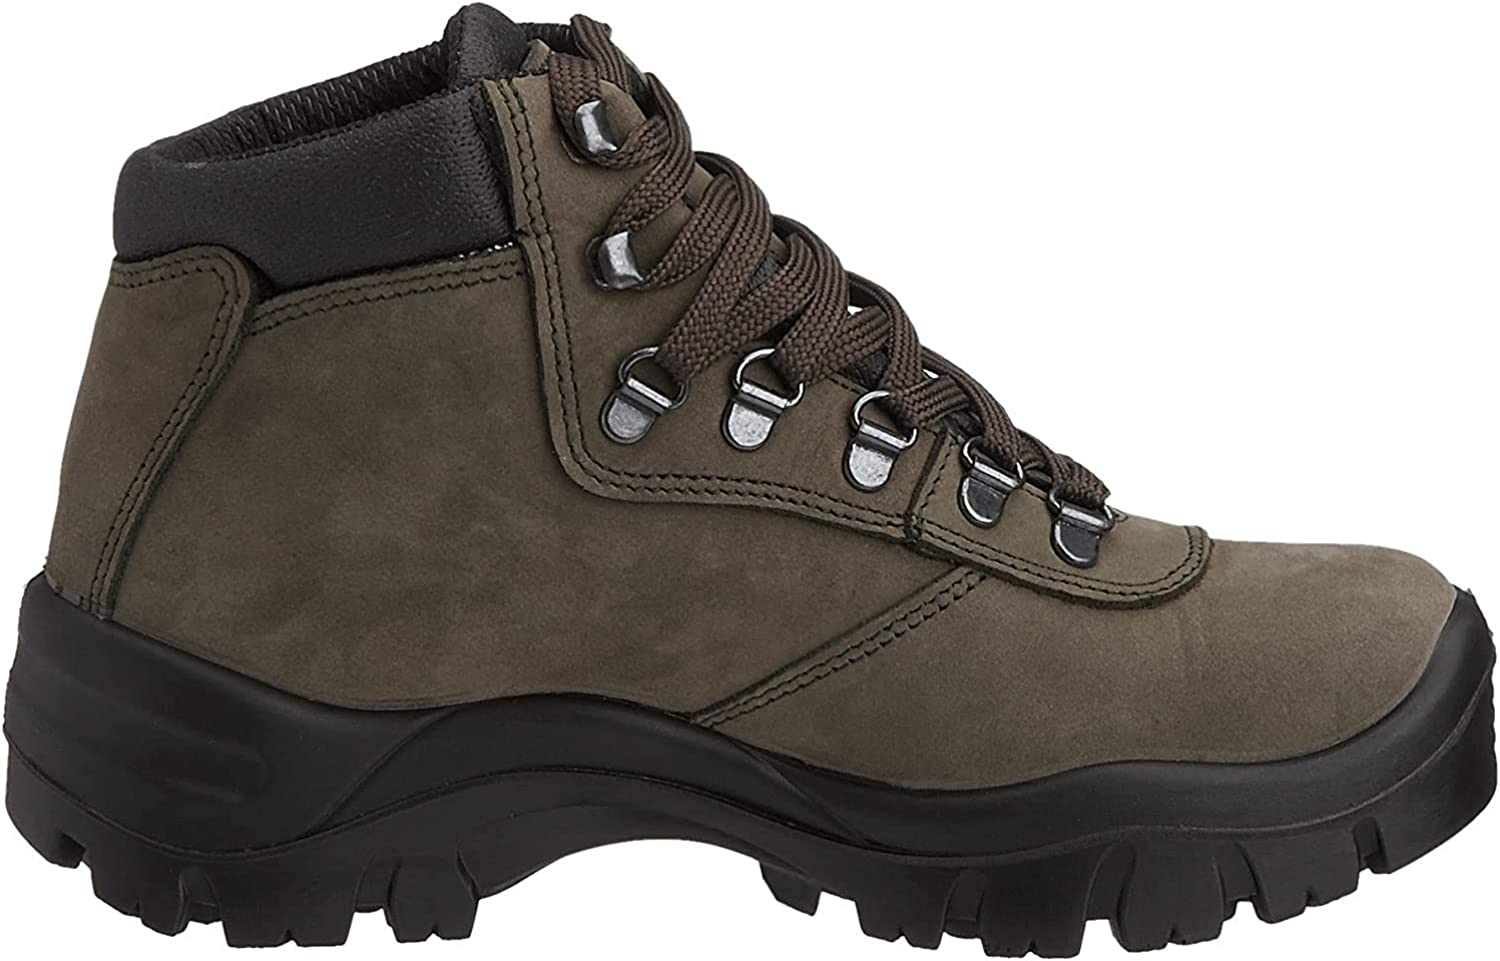 Grisport Popular shop is the lowest price challenge Unisex-Adult Boot Award Hiking